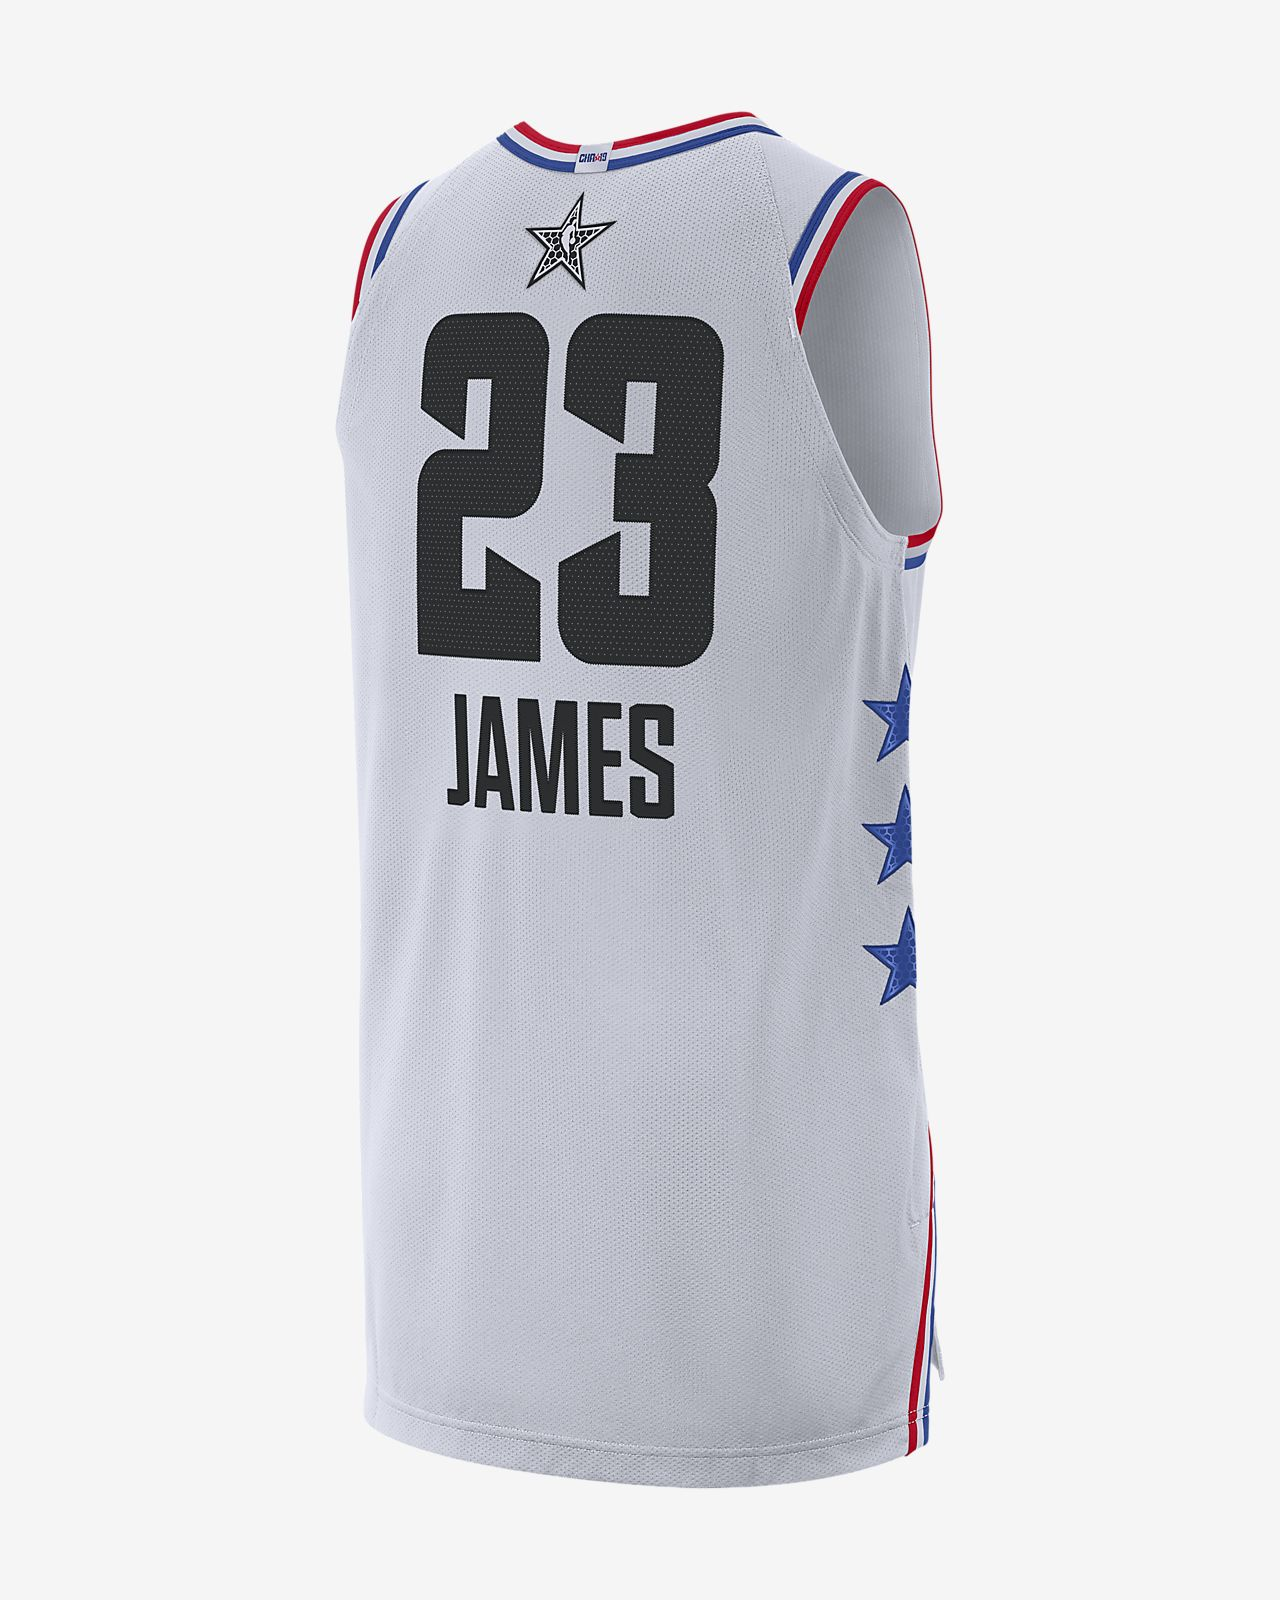 on sale 197ba 228e9 ... LeBron James All-Star Edition Authentic Mens Jordan NBA Connected  Jersey